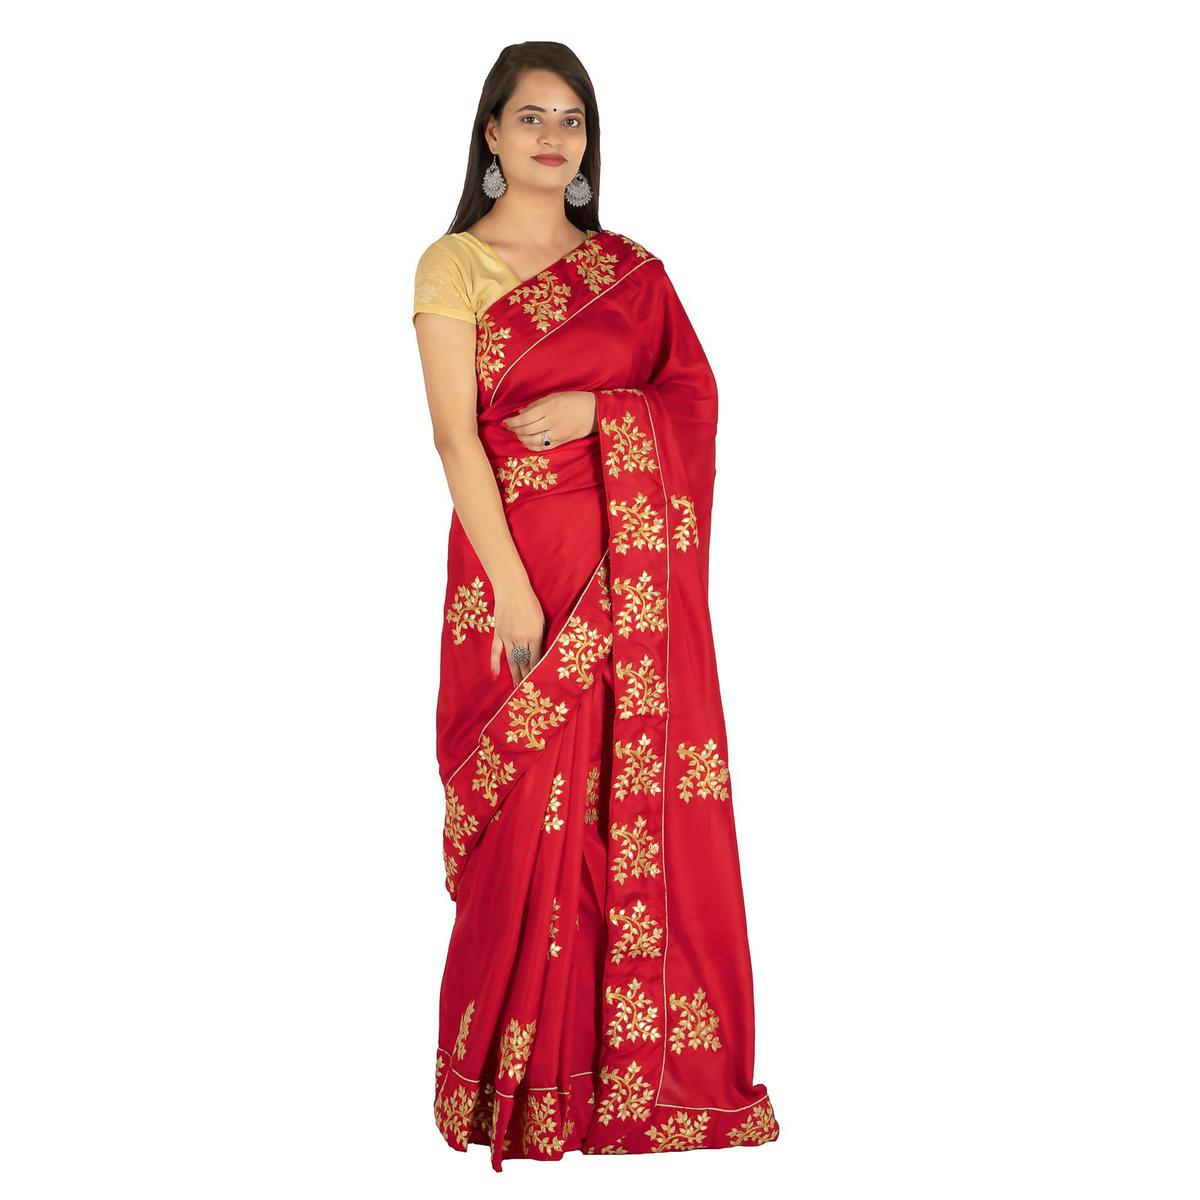 Pooja Fashion - Red Colored Party Wear Embroidered Brasso Silk Saree